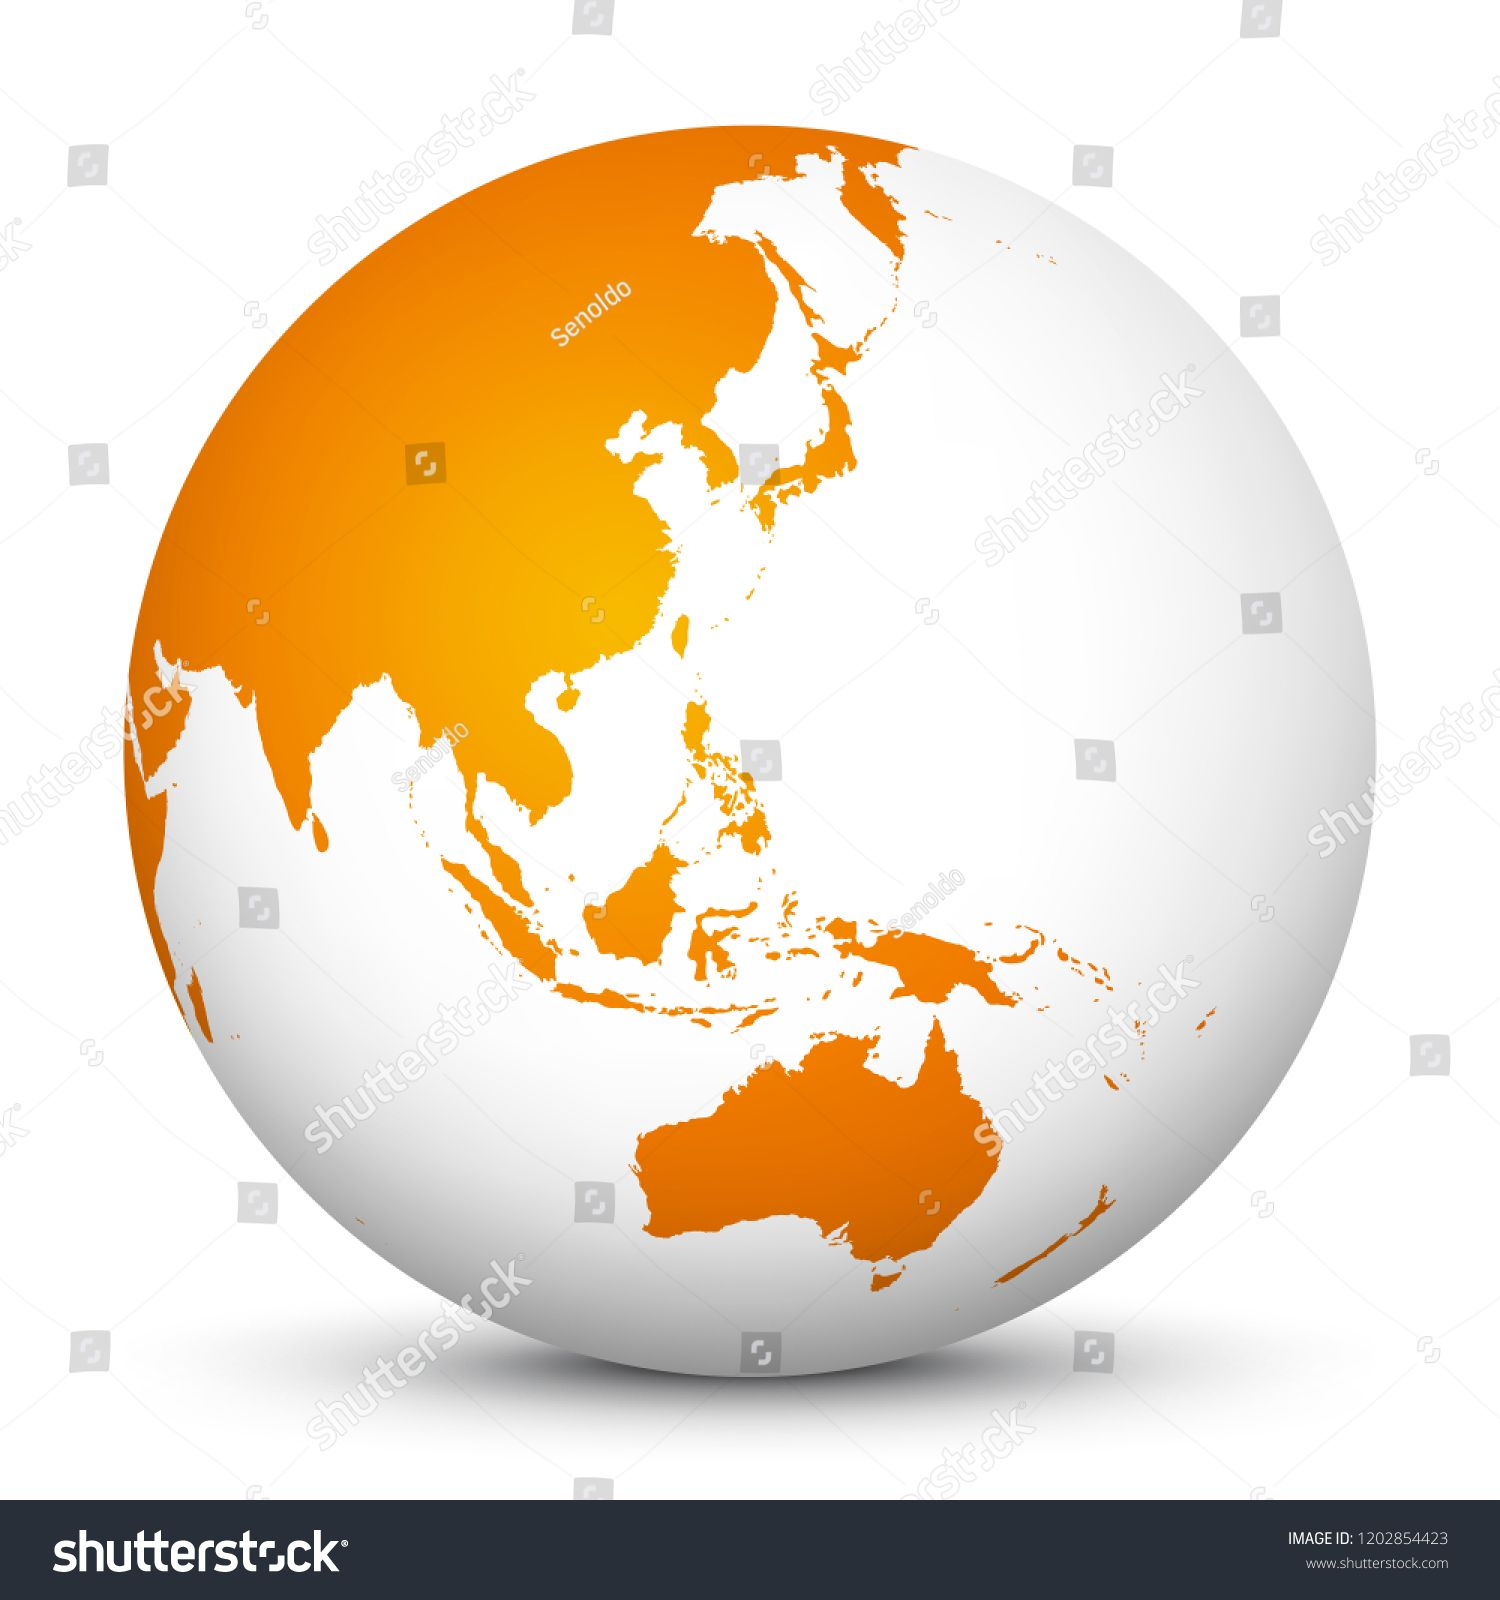 White 3D Globe Icon with Orange Continents  Planet Earth